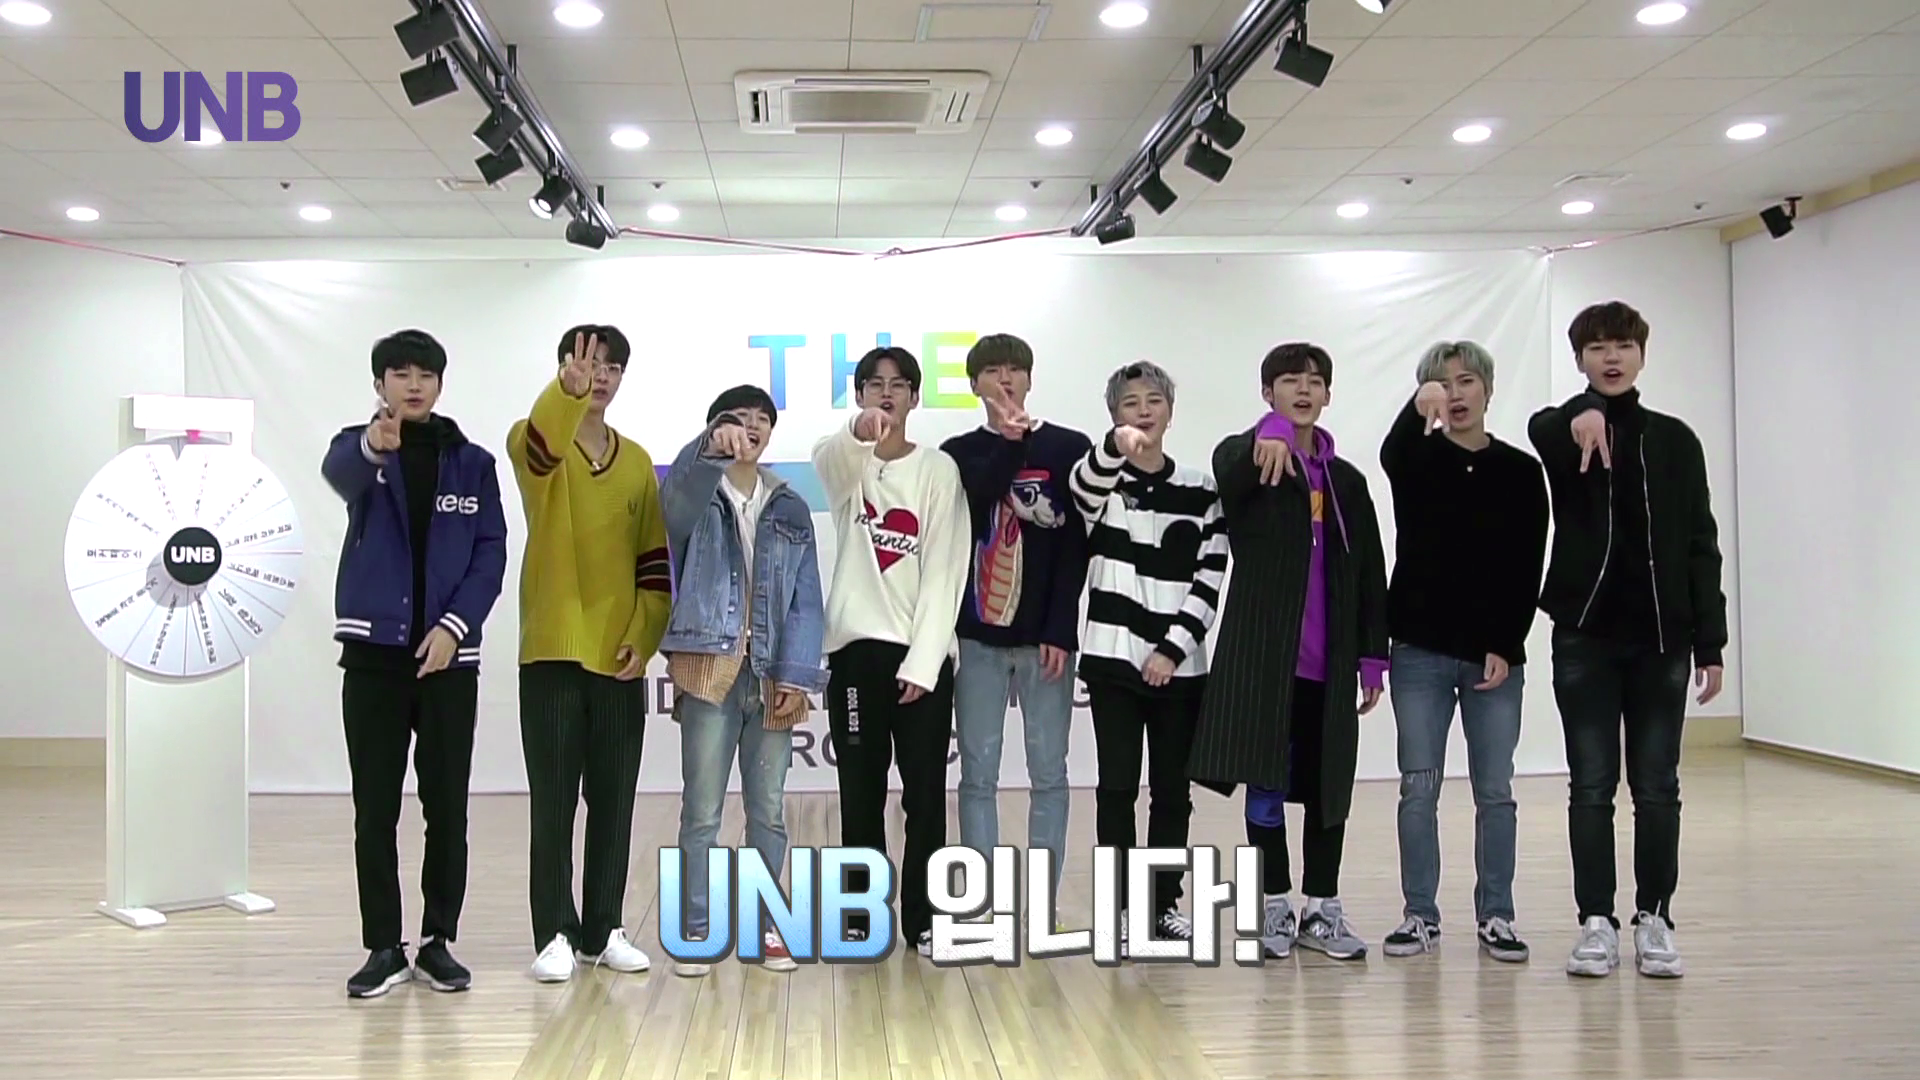 UNB THANKS TO FANMEETING VCR-Reality